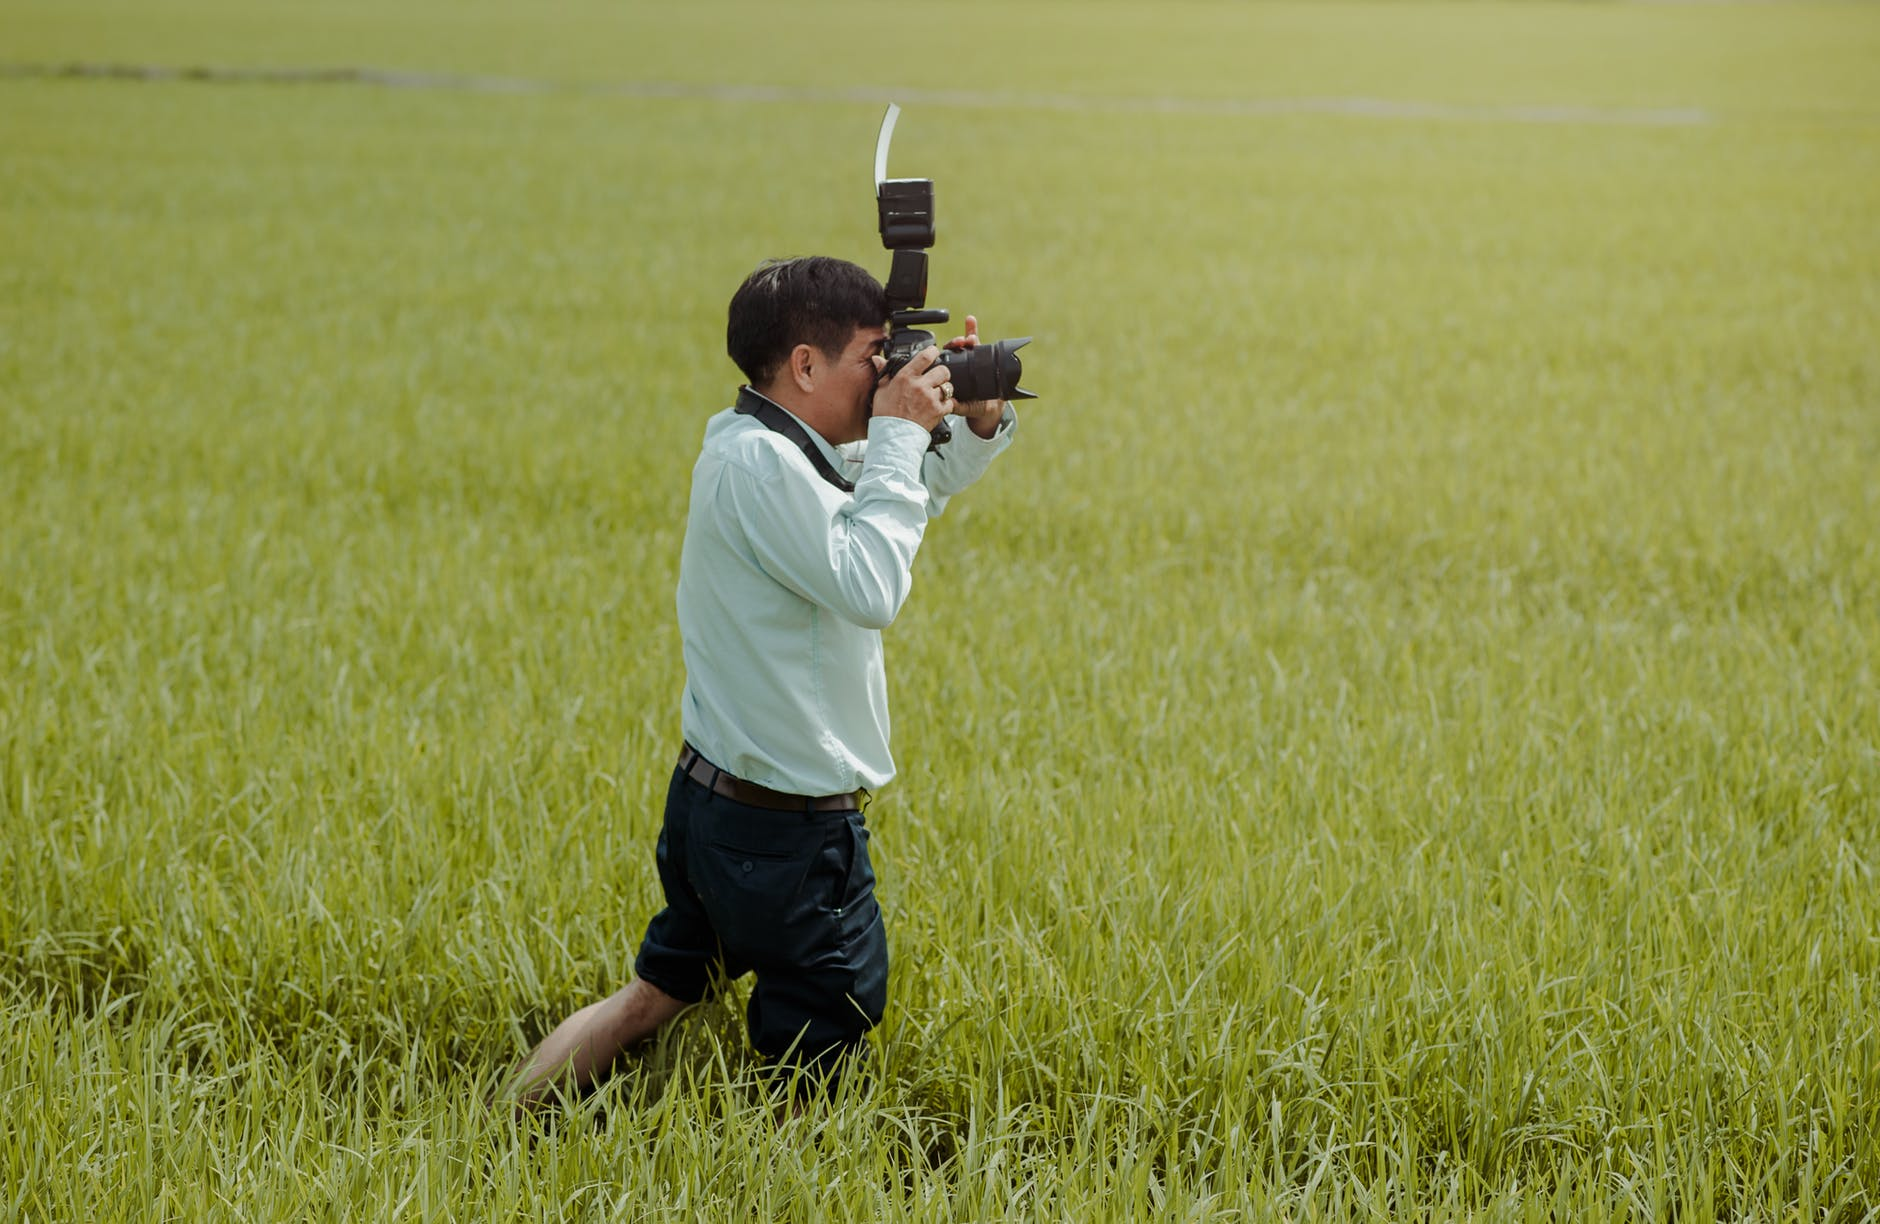 Man Taking Photos in the Field, Man Taking Photos in the Field